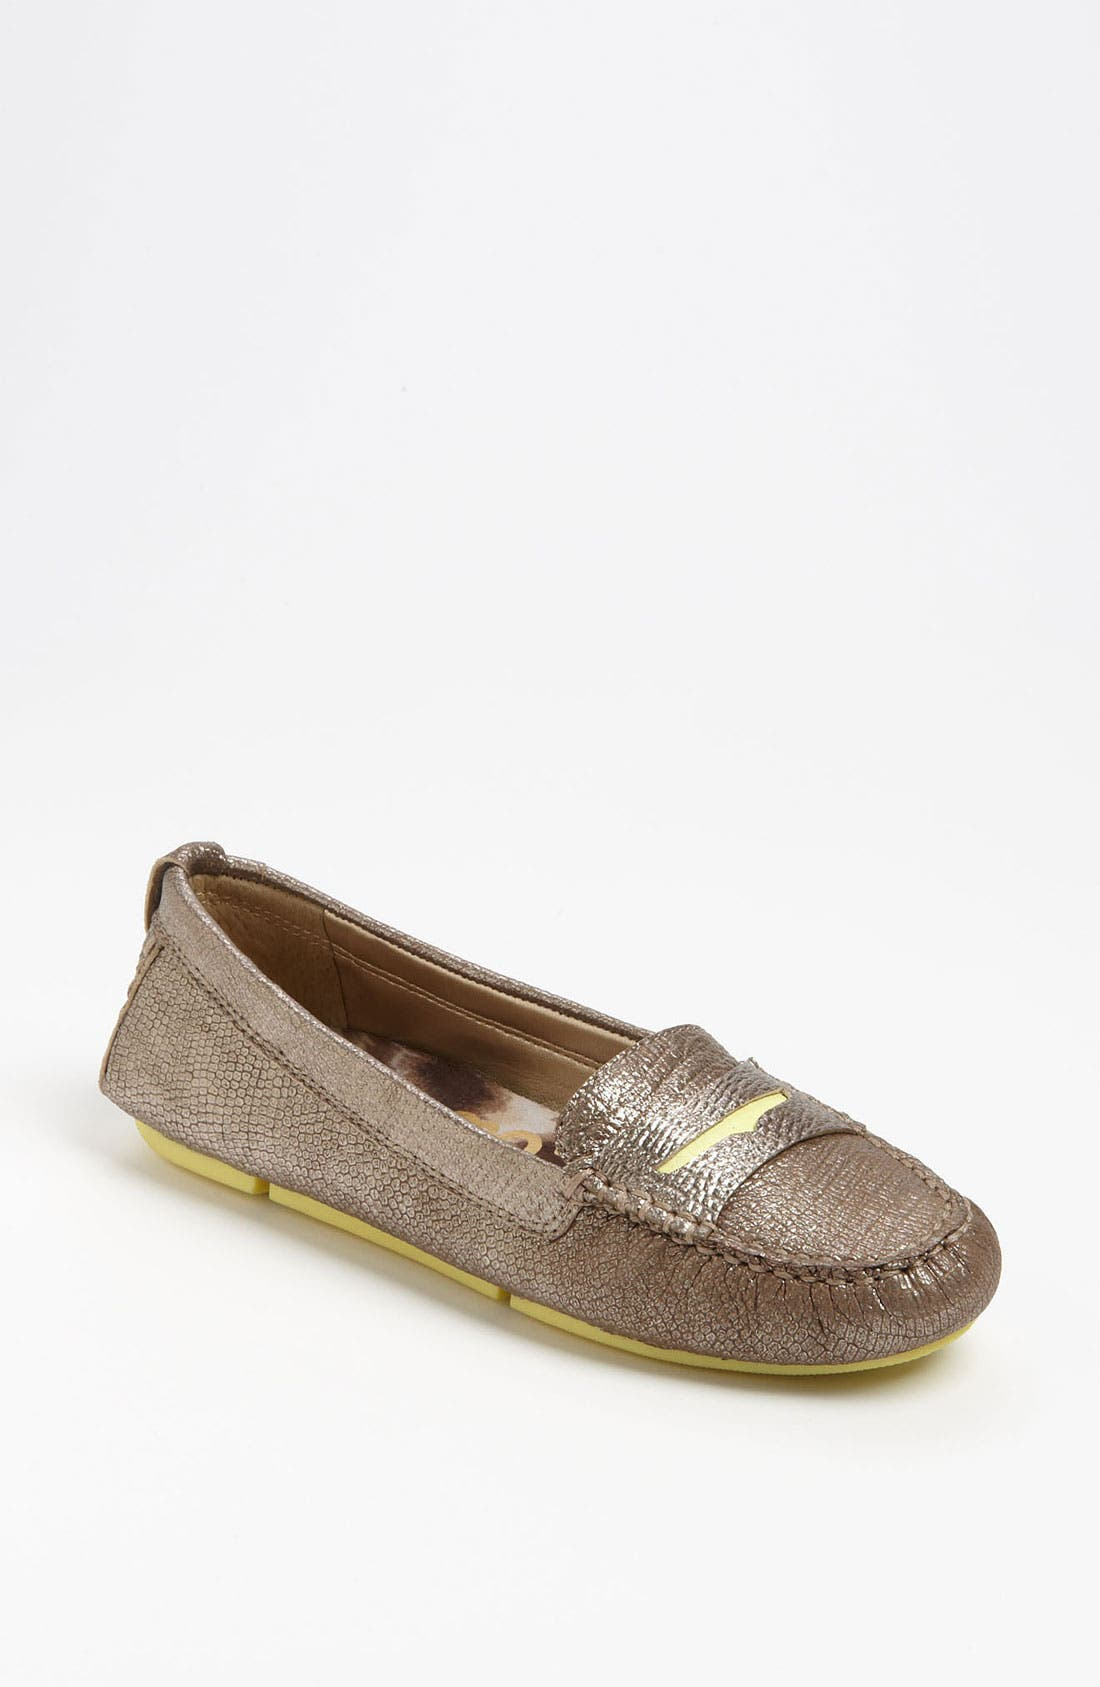 Alternate Image 1 Selected - Sam Edelman 'Jones' Flat